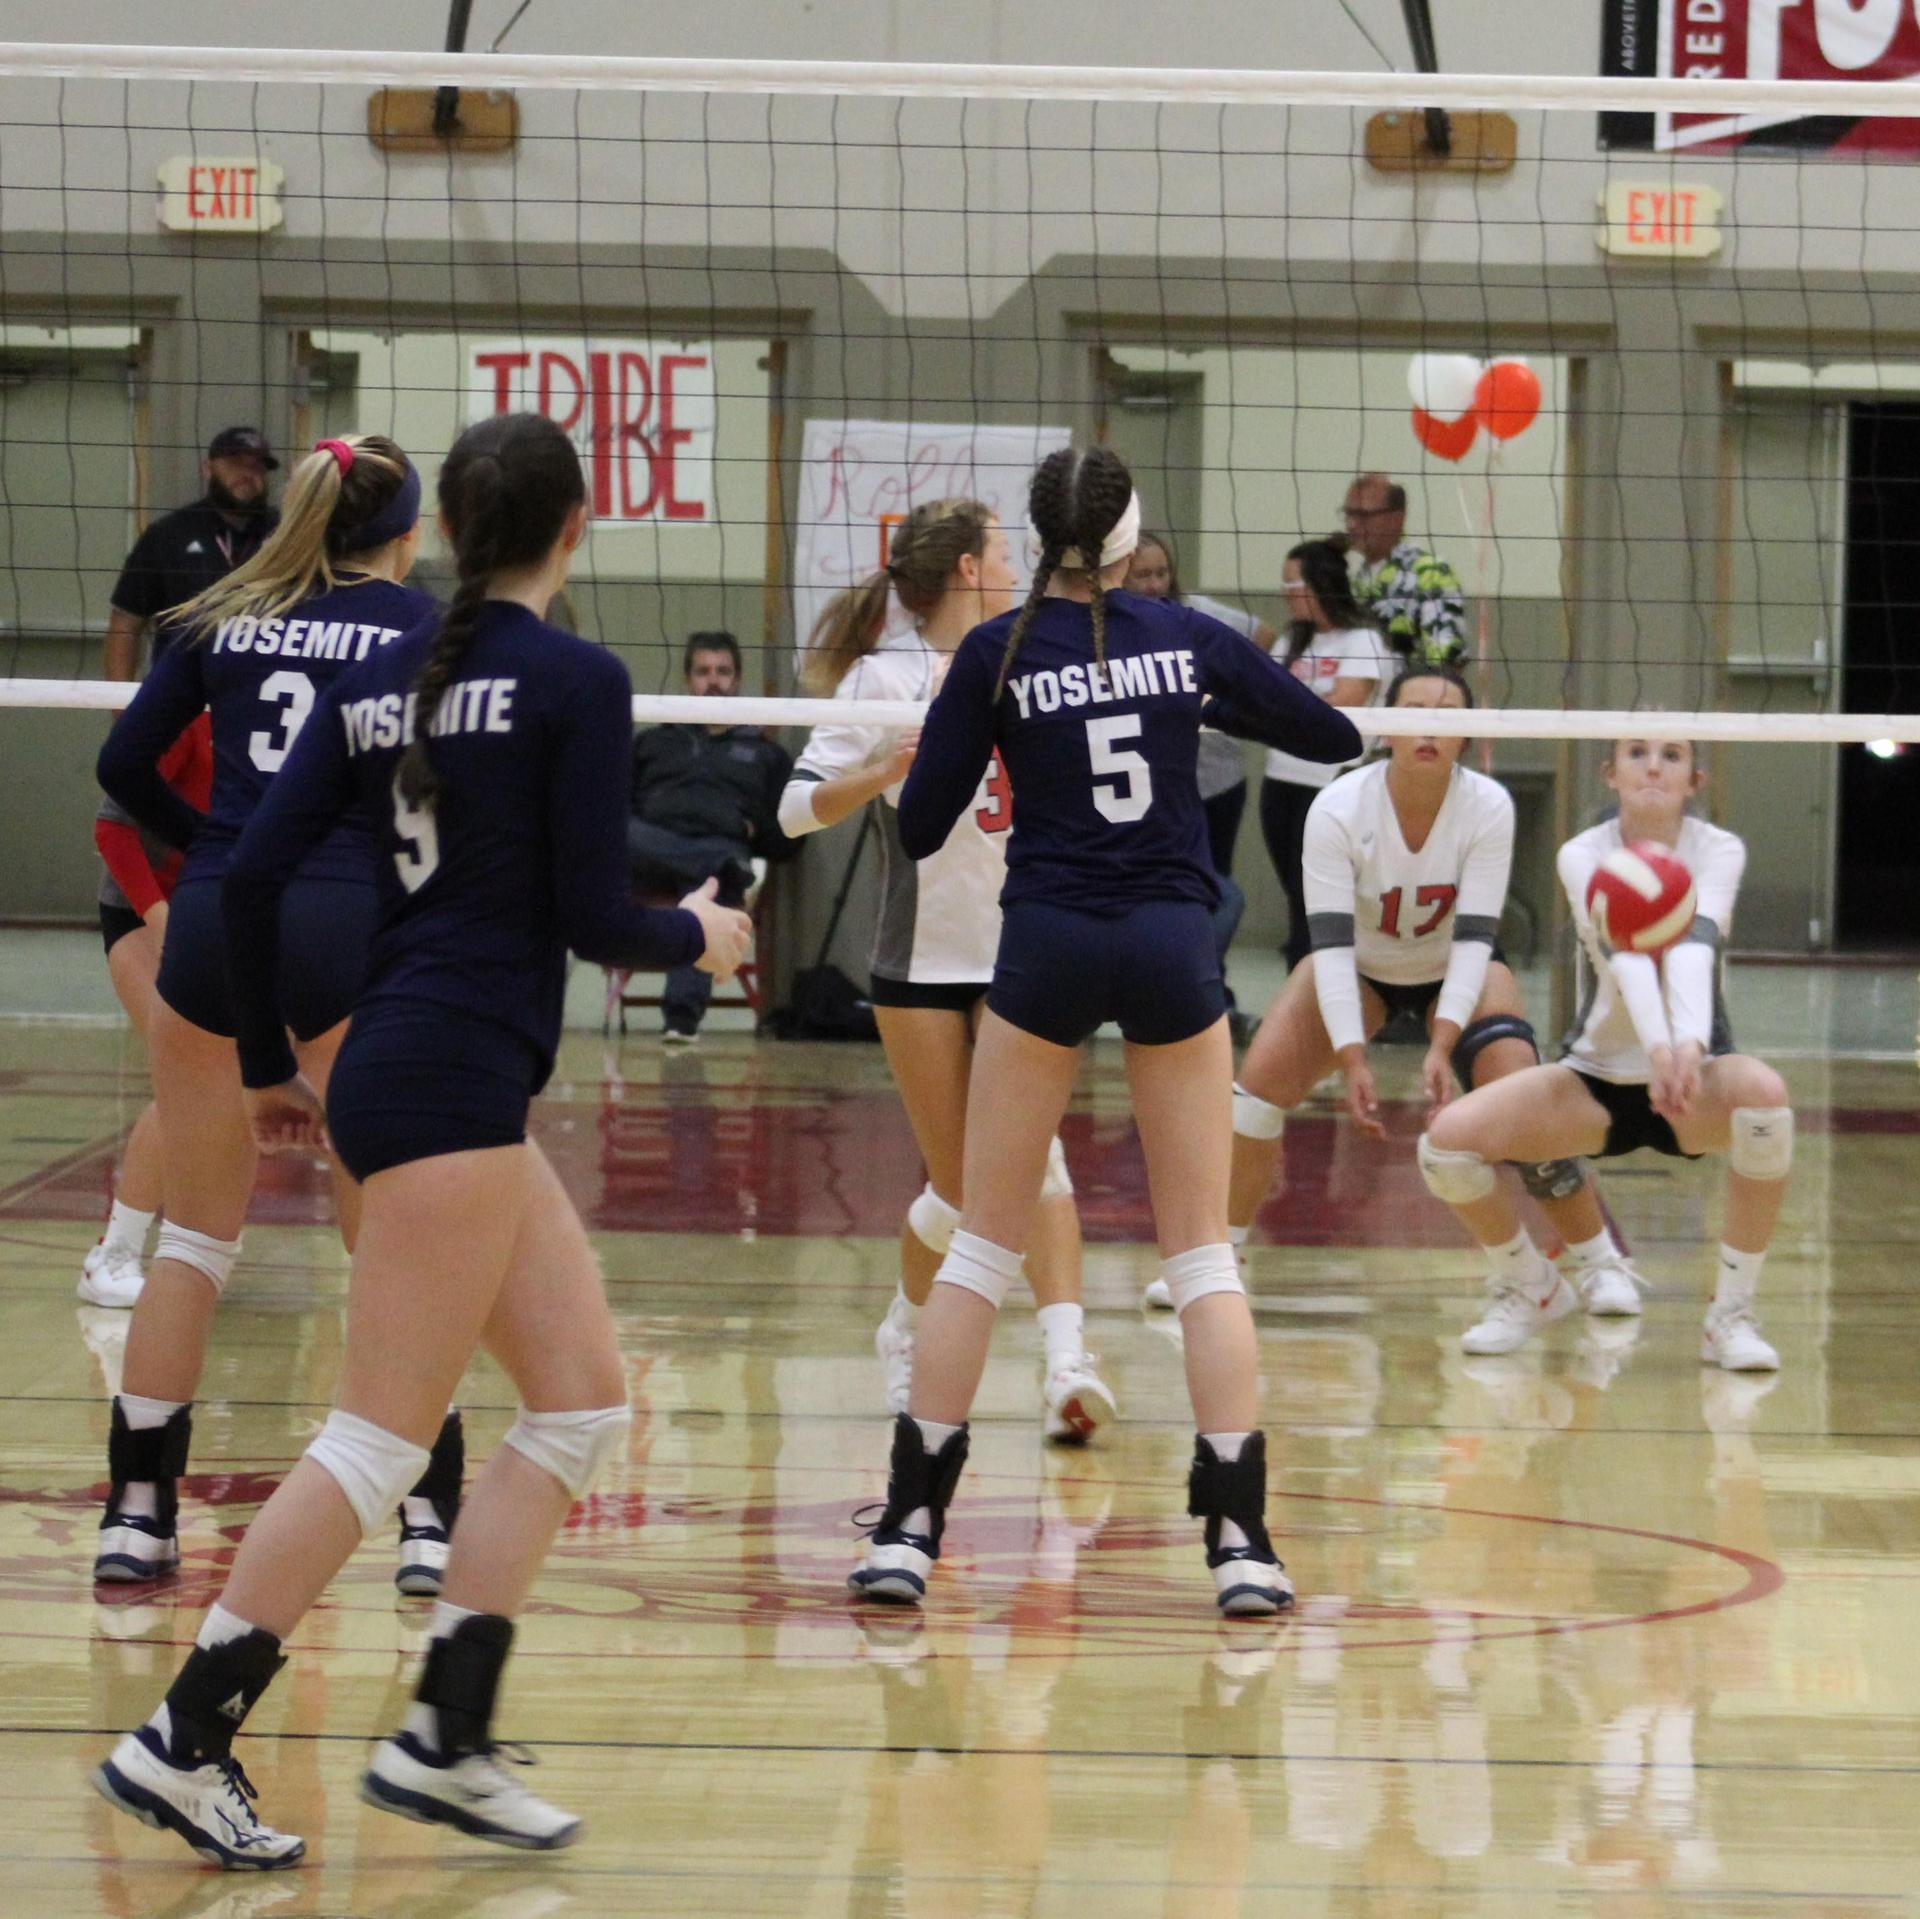 Girls playing varsity volleyball